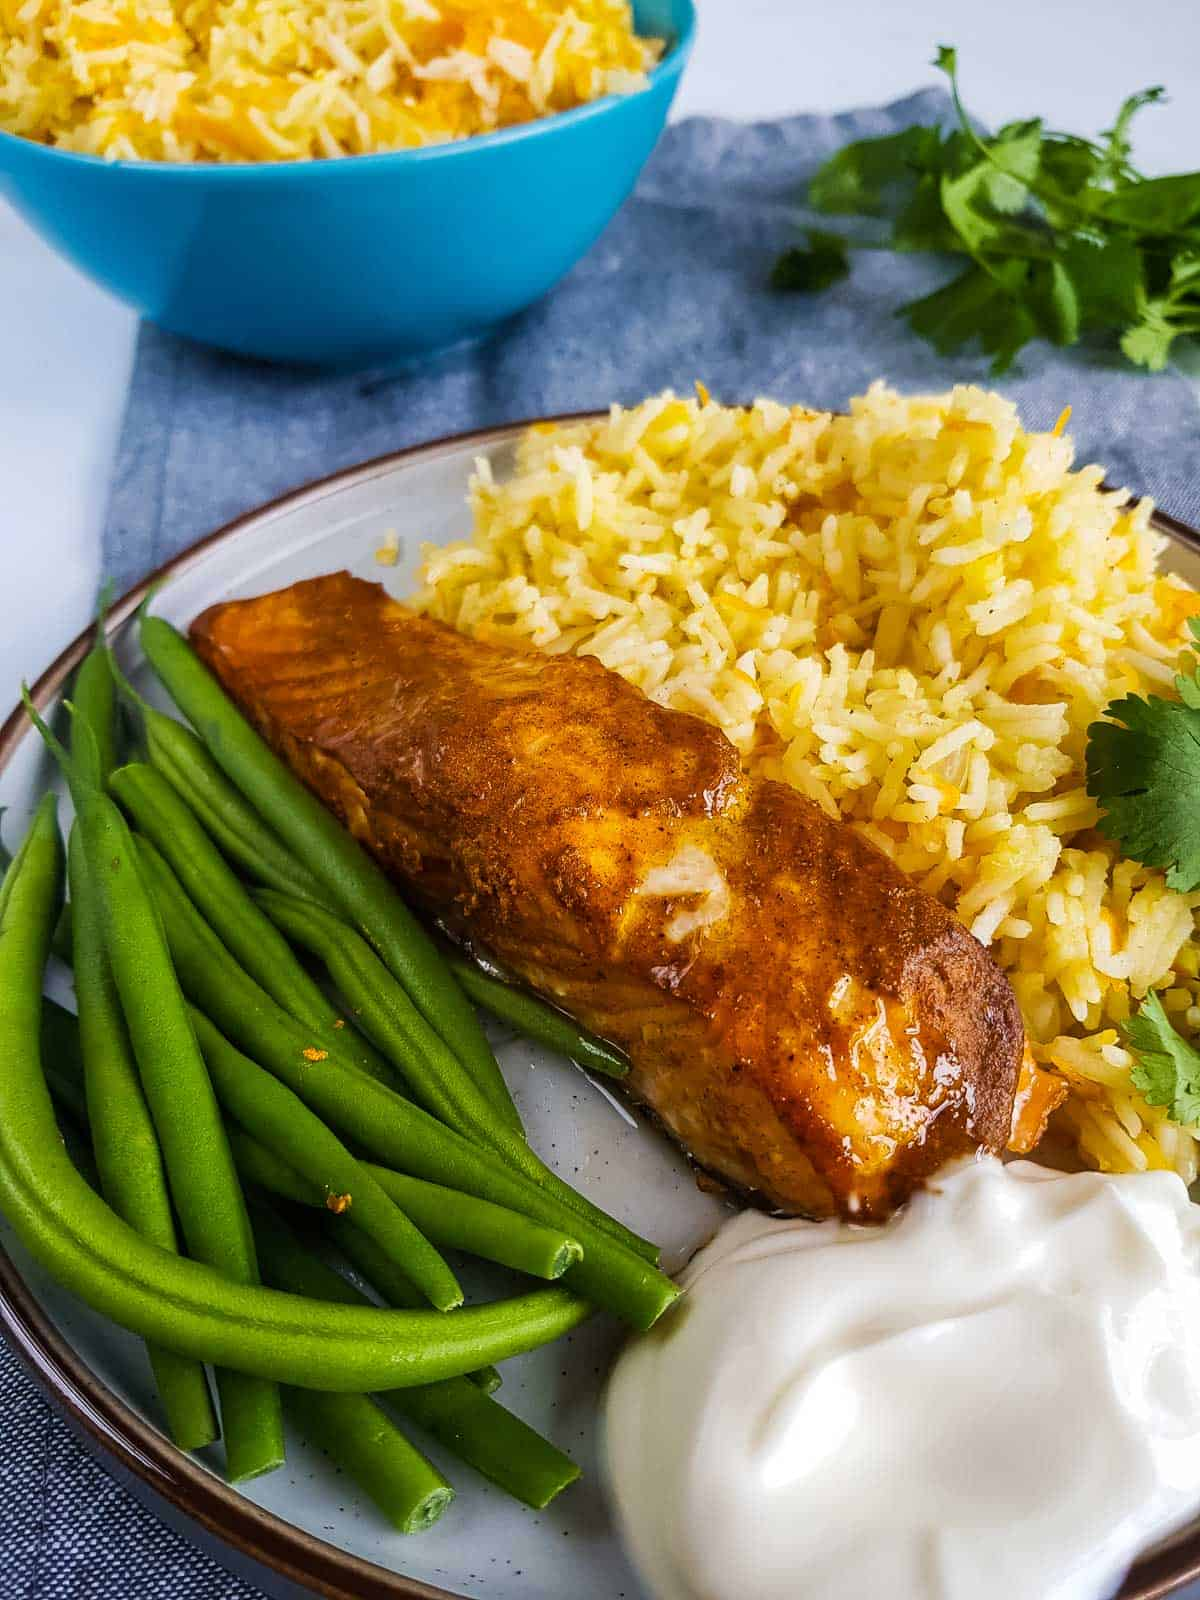 Tandoori salmon on a plate with rice and green beans.